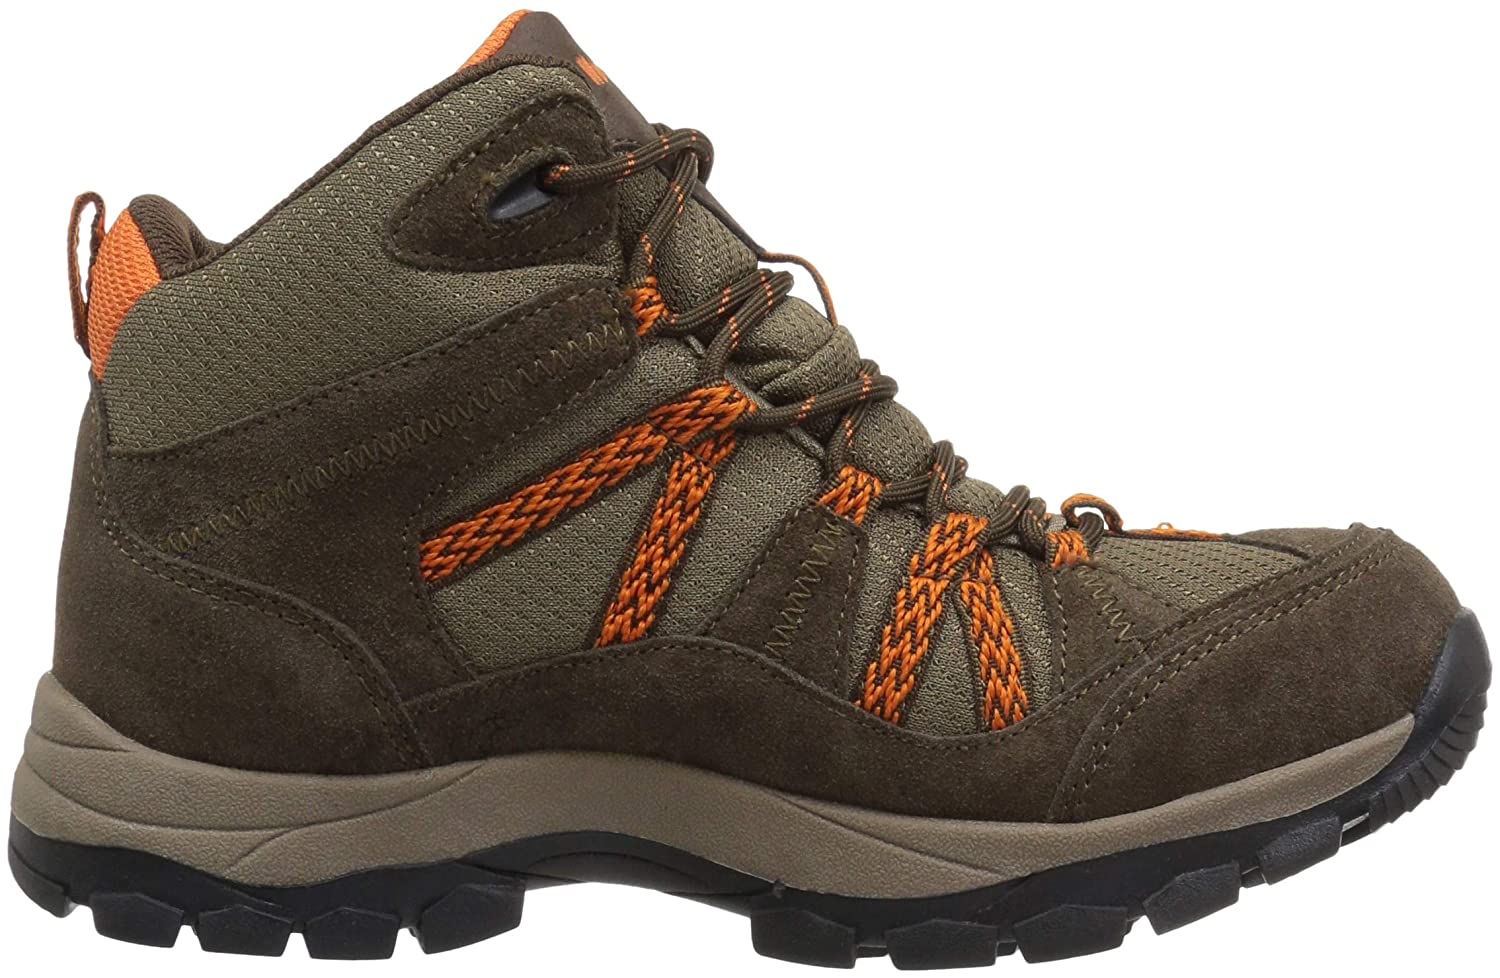 Northside Freemont Leather Mid Waterproof Hiking Boot Little Kid//Big Kid Triple T Trading FREEMONT WP-K